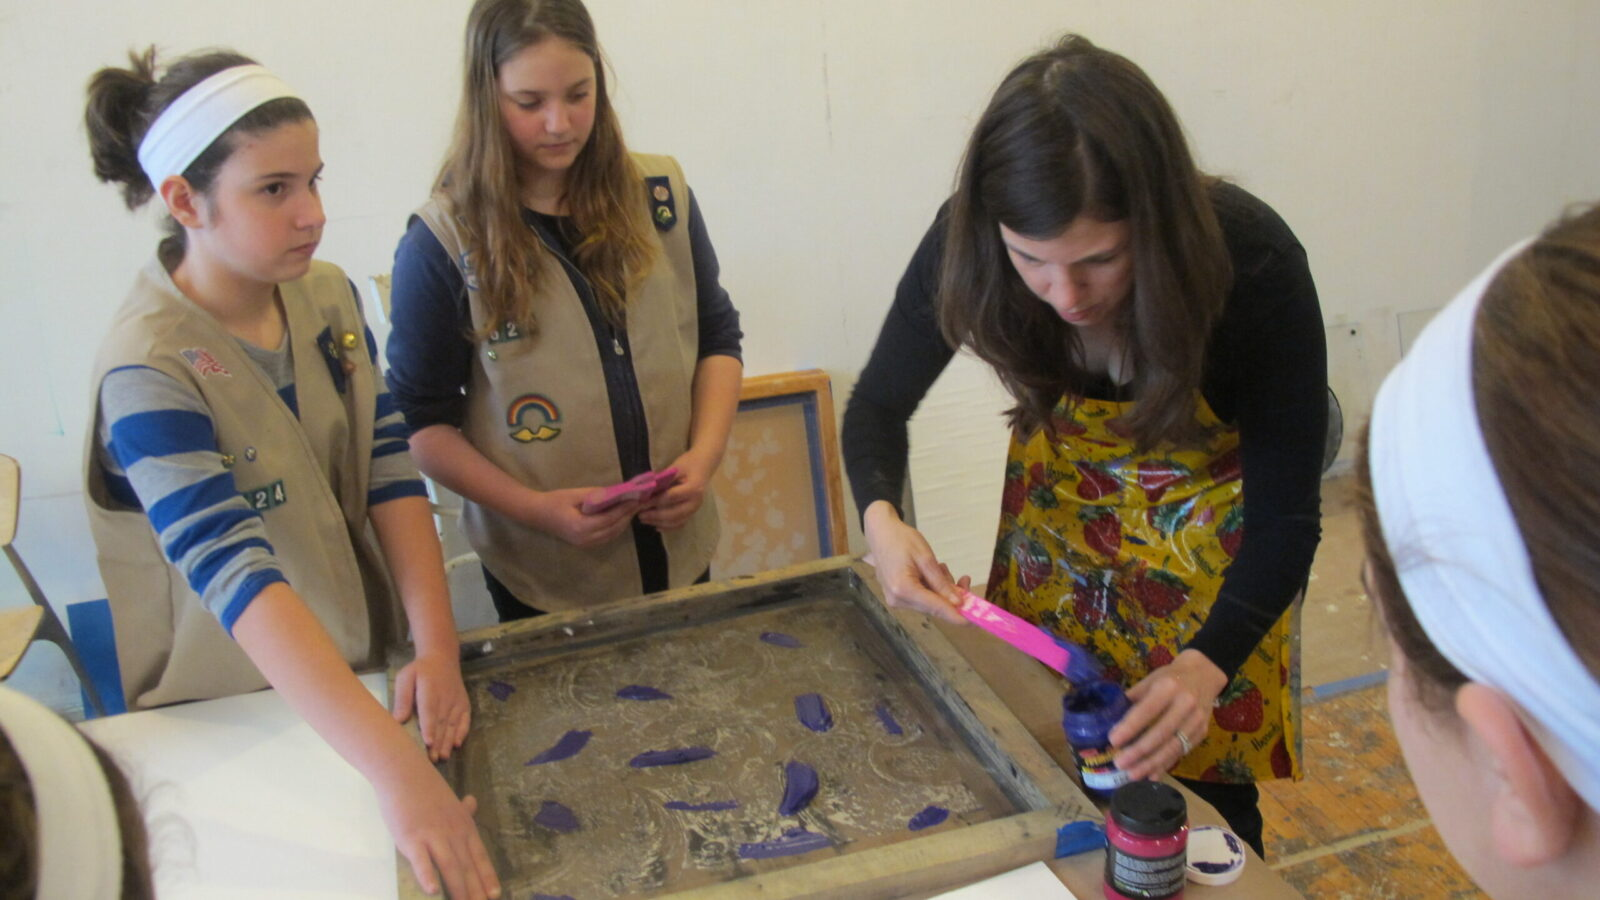 The Girl Scouts Visit Studio Laura Loving